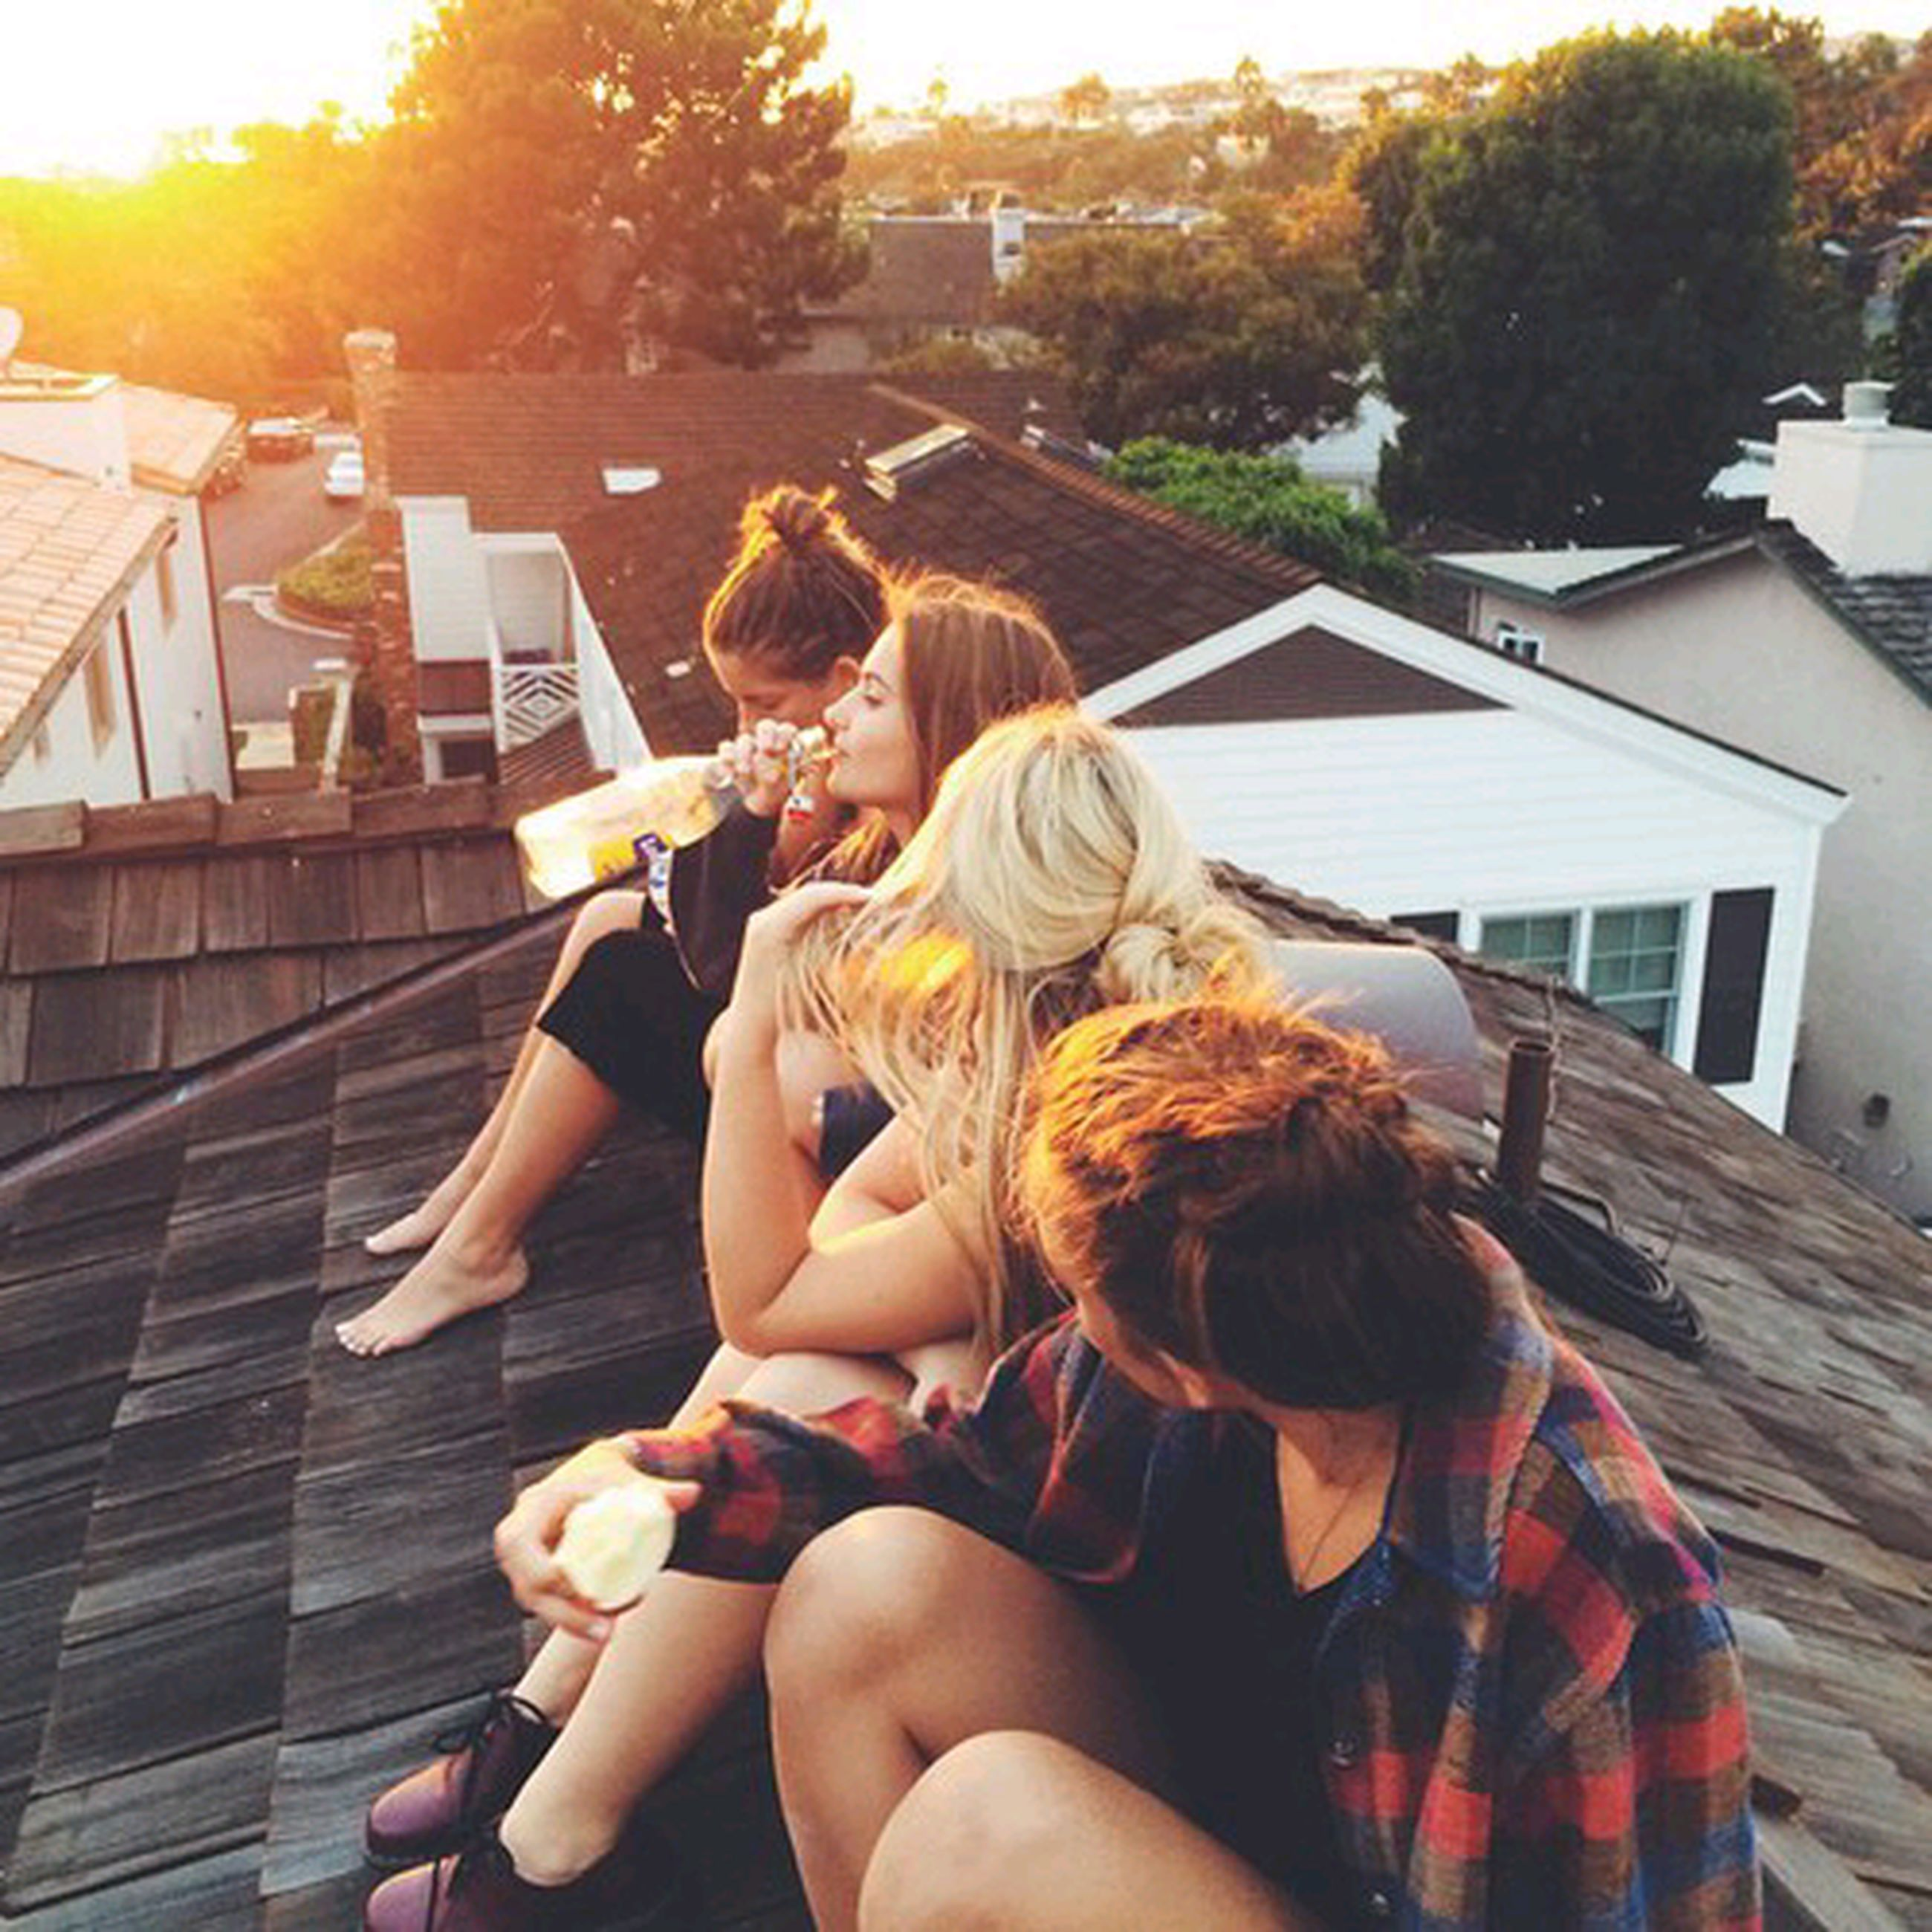 lifestyles, leisure activity, person, tree, casual clothing, young adult, sitting, childhood, building exterior, young women, built structure, holding, sunlight, architecture, full length, girls, relaxation, elementary age